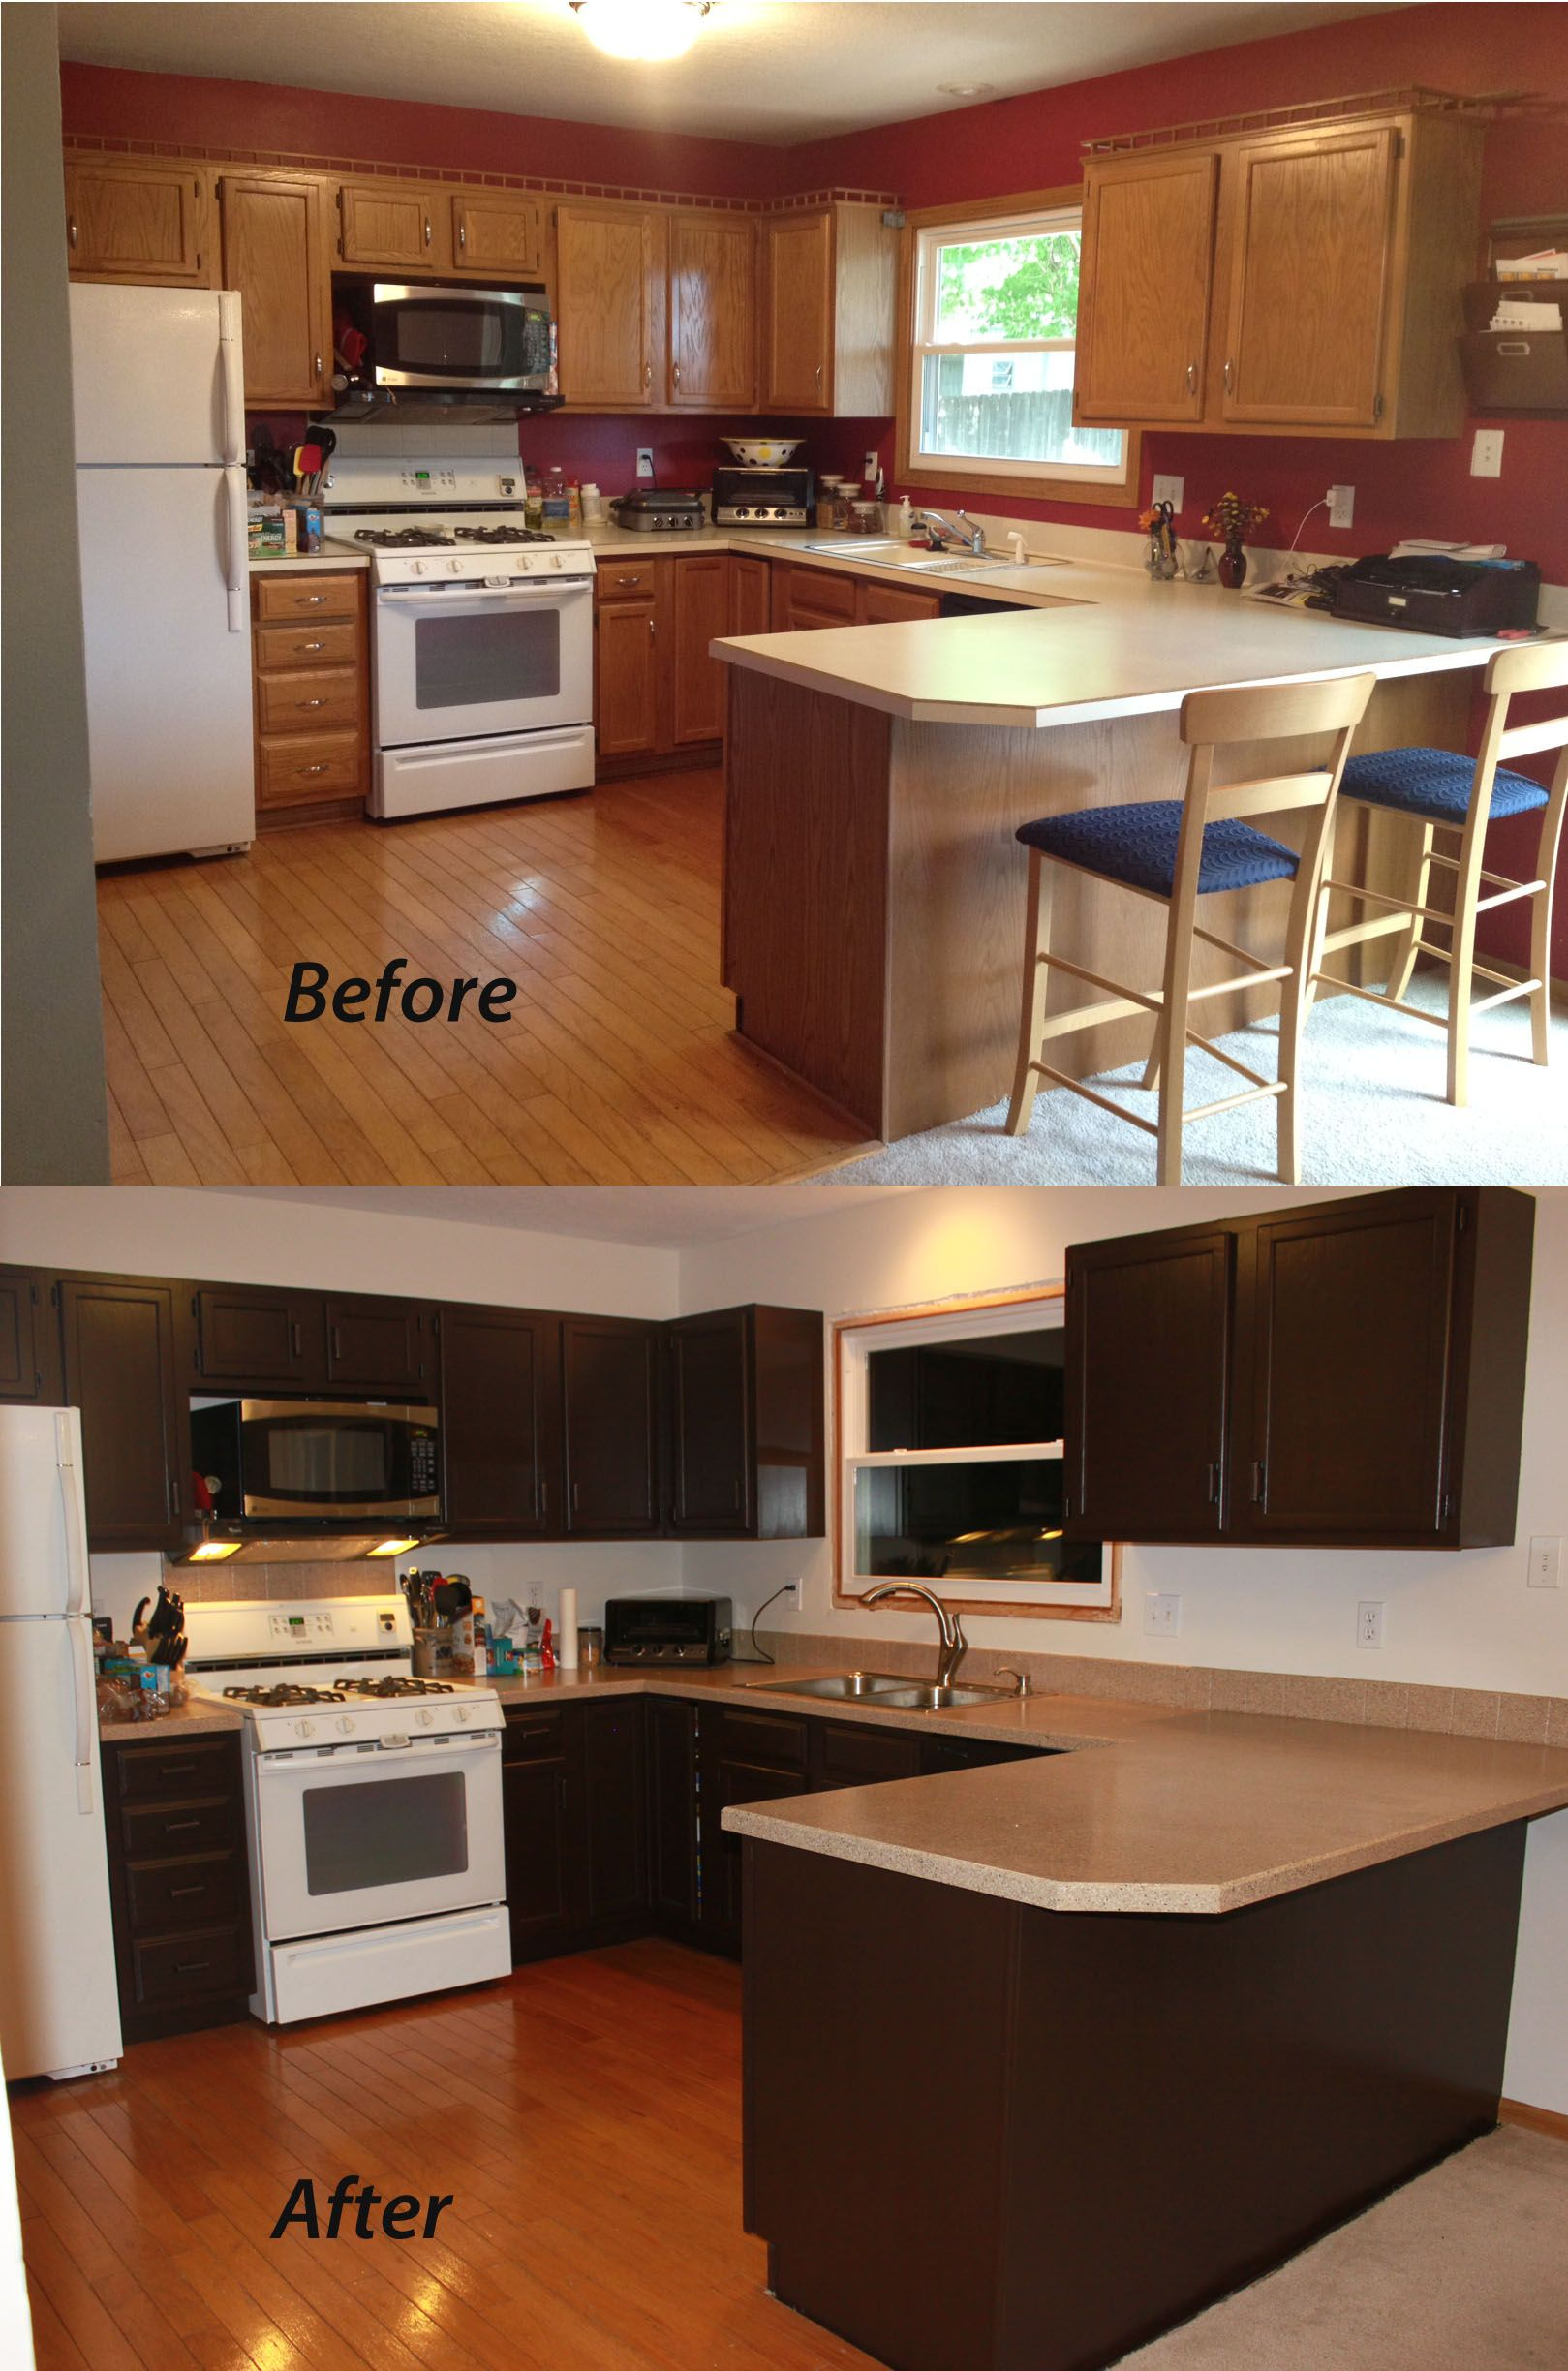 Painting Kitchen Cabinets Home Kitchen Cabinets Before After Kitchen Cabinets Painted Before After Painting Kitchen Cabinets